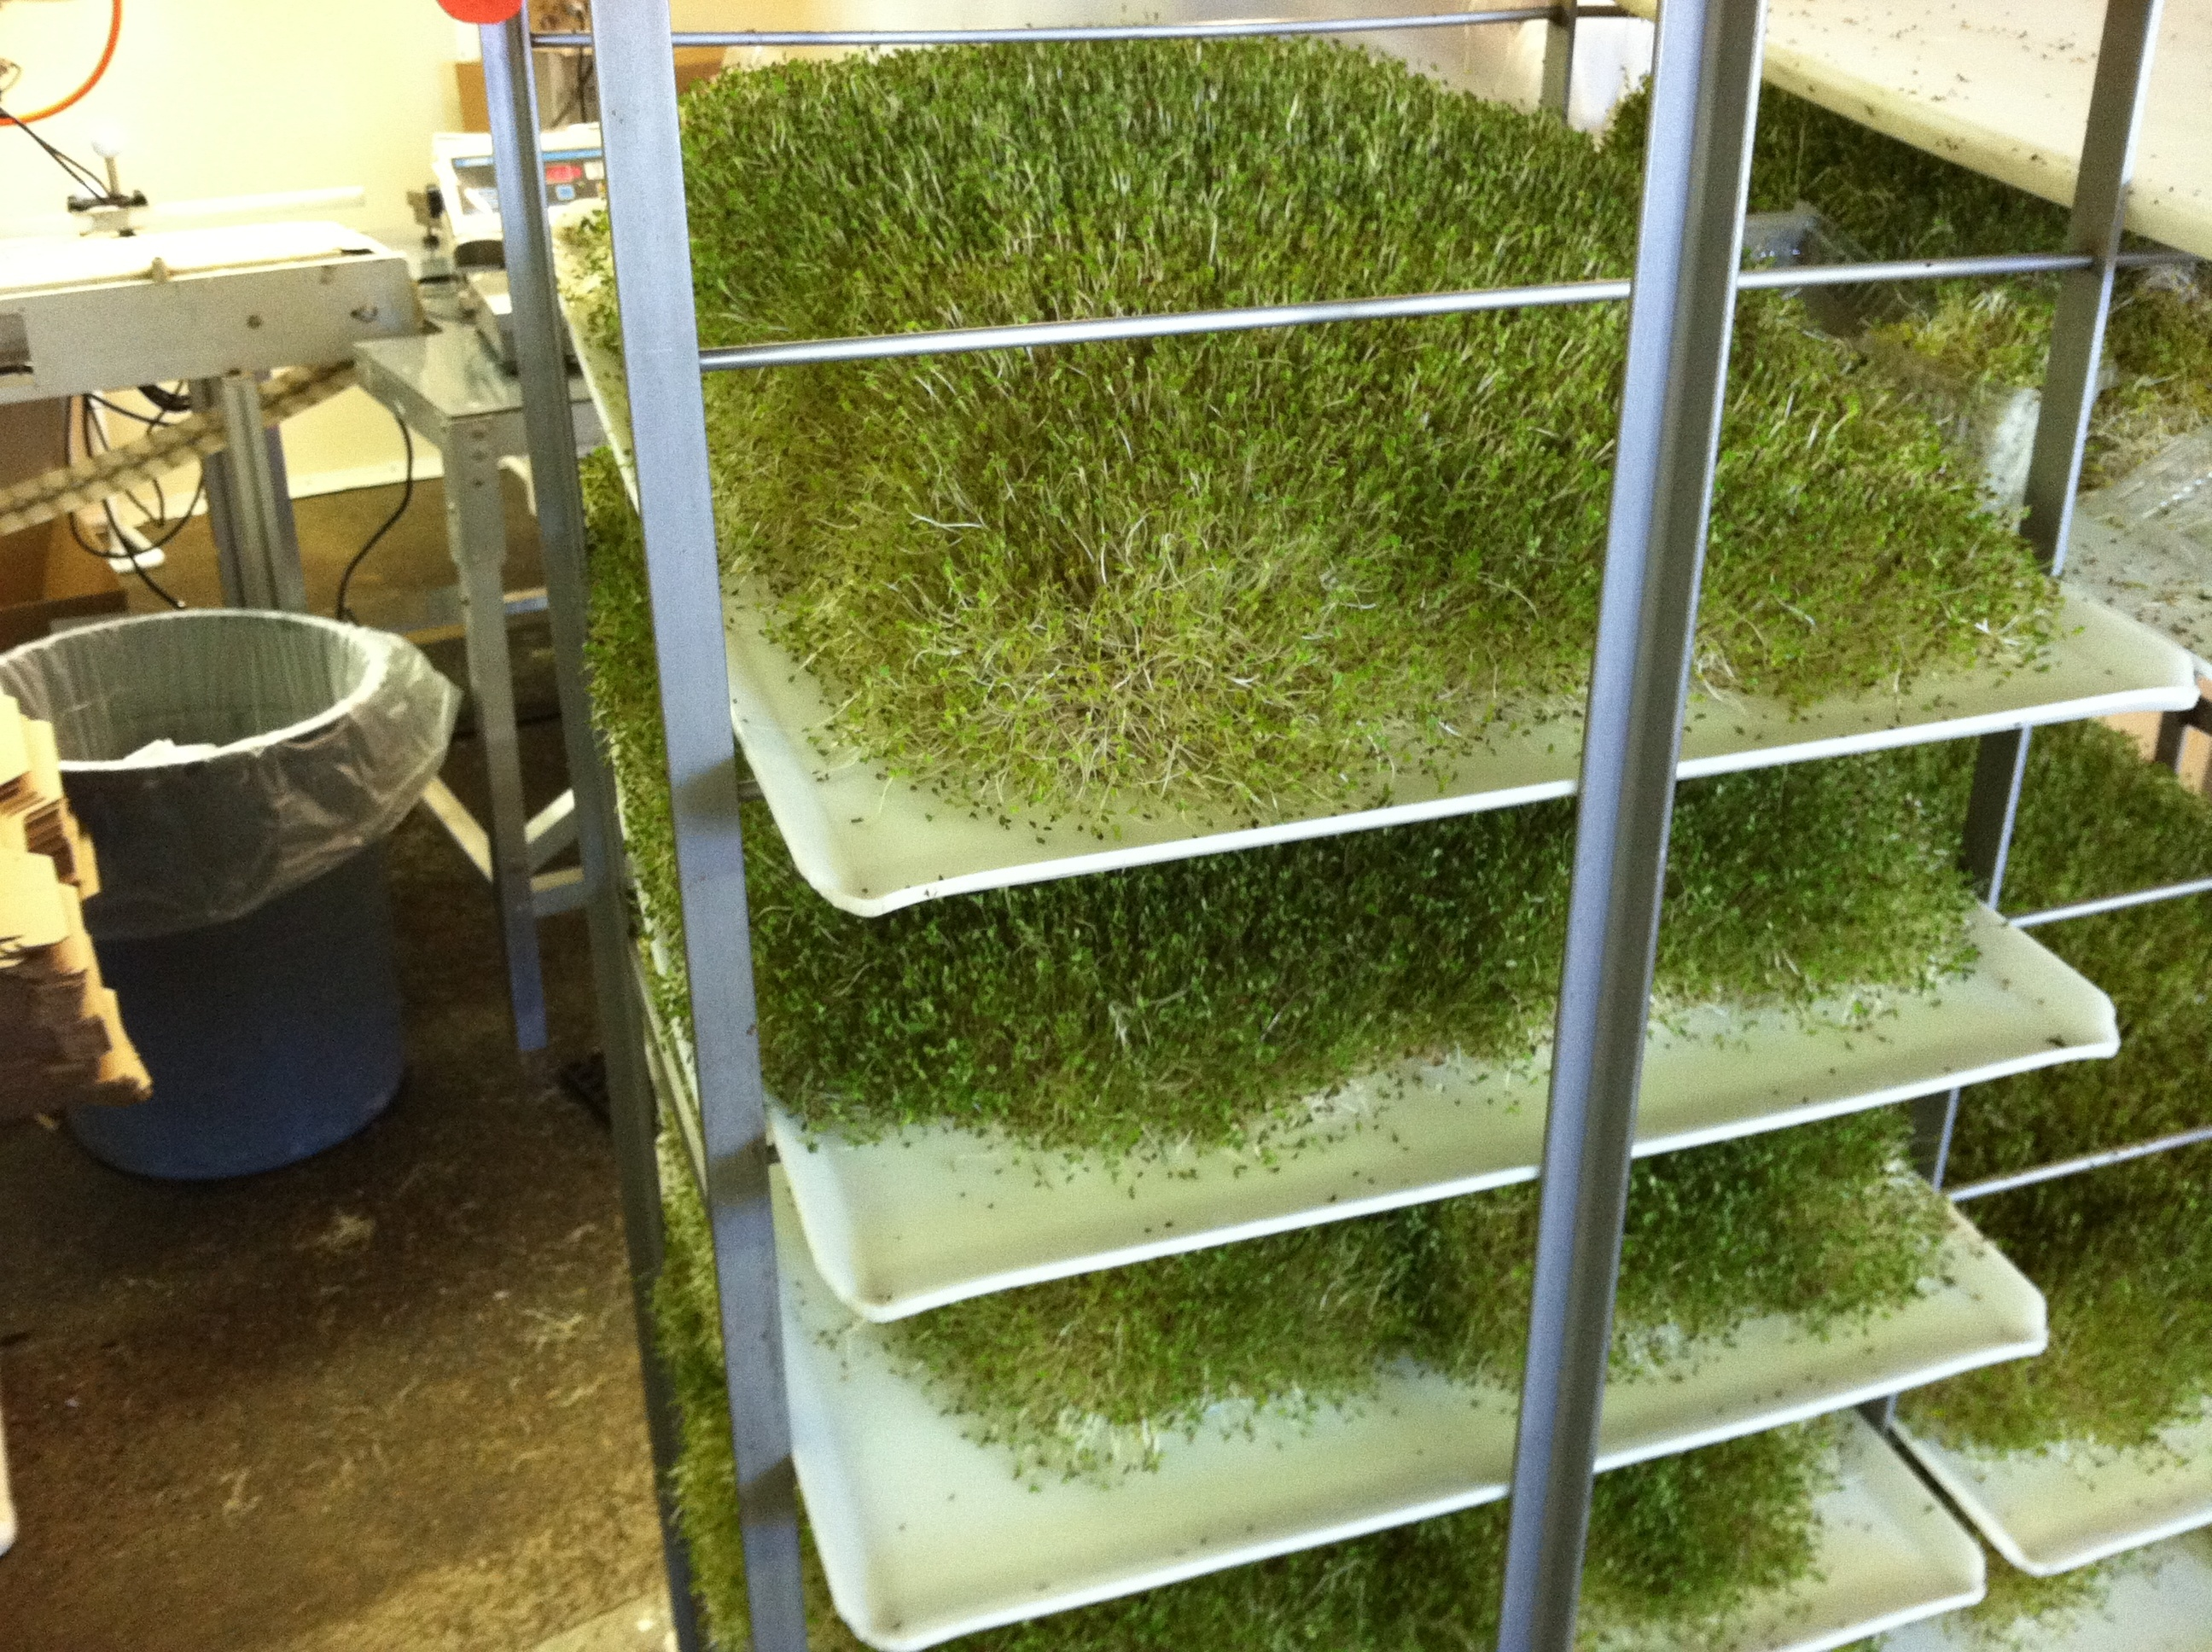 Boston Organics - Jonathan's Organics sprouting rack